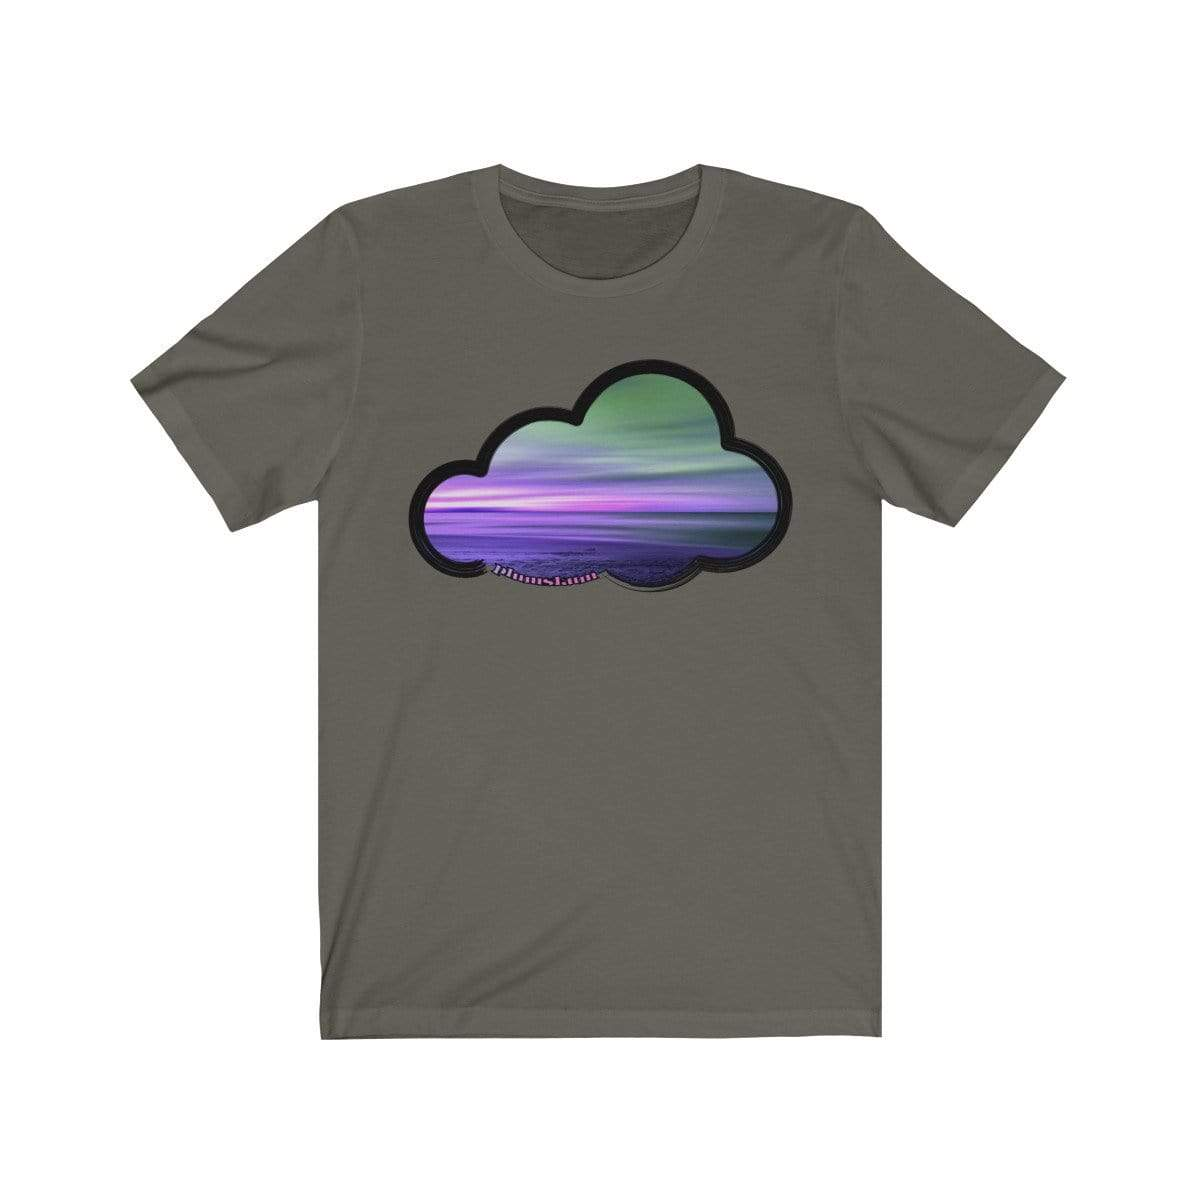 Printify T-Shirt Army / L Beaches Art Clouds Tee